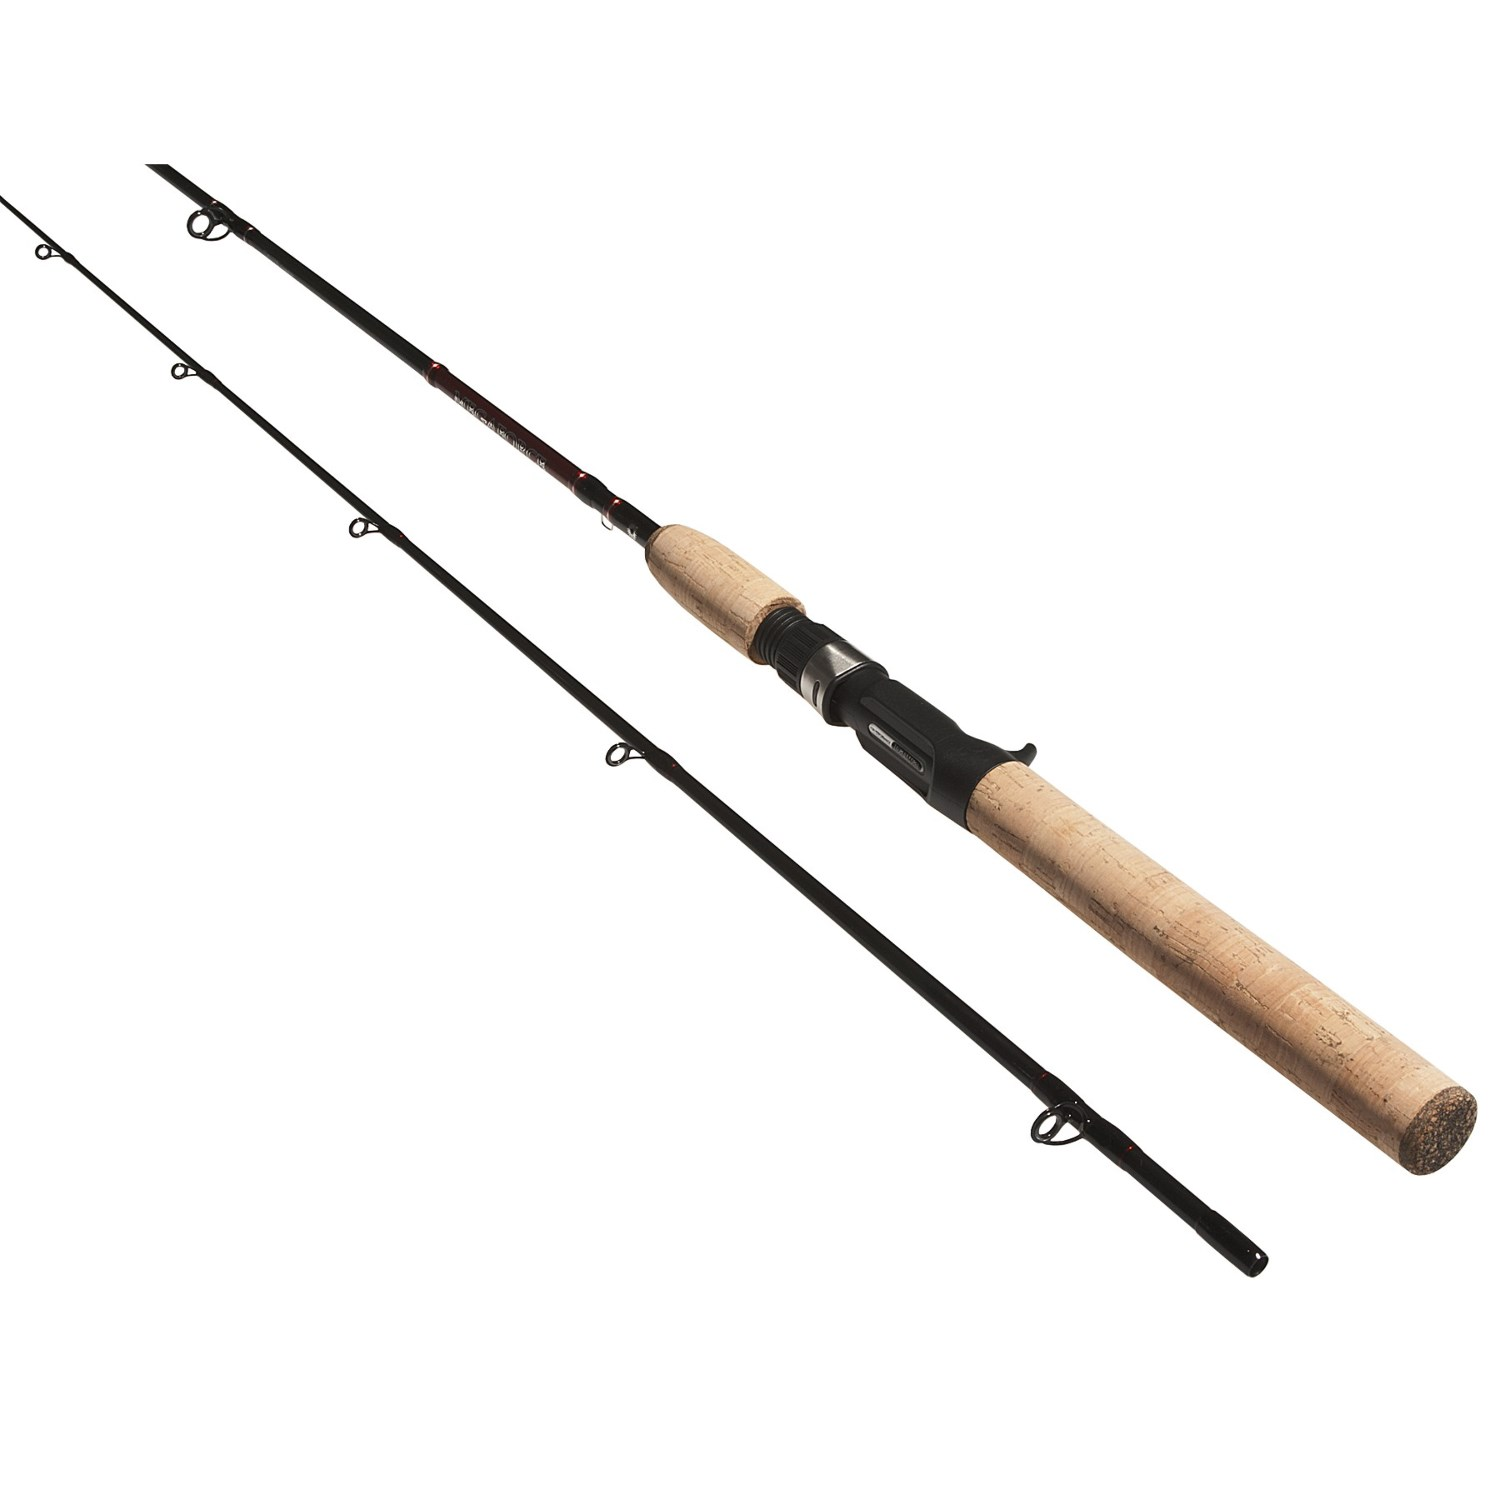 daiwa megaforce bait cast fishing rod 2 piece 5153t